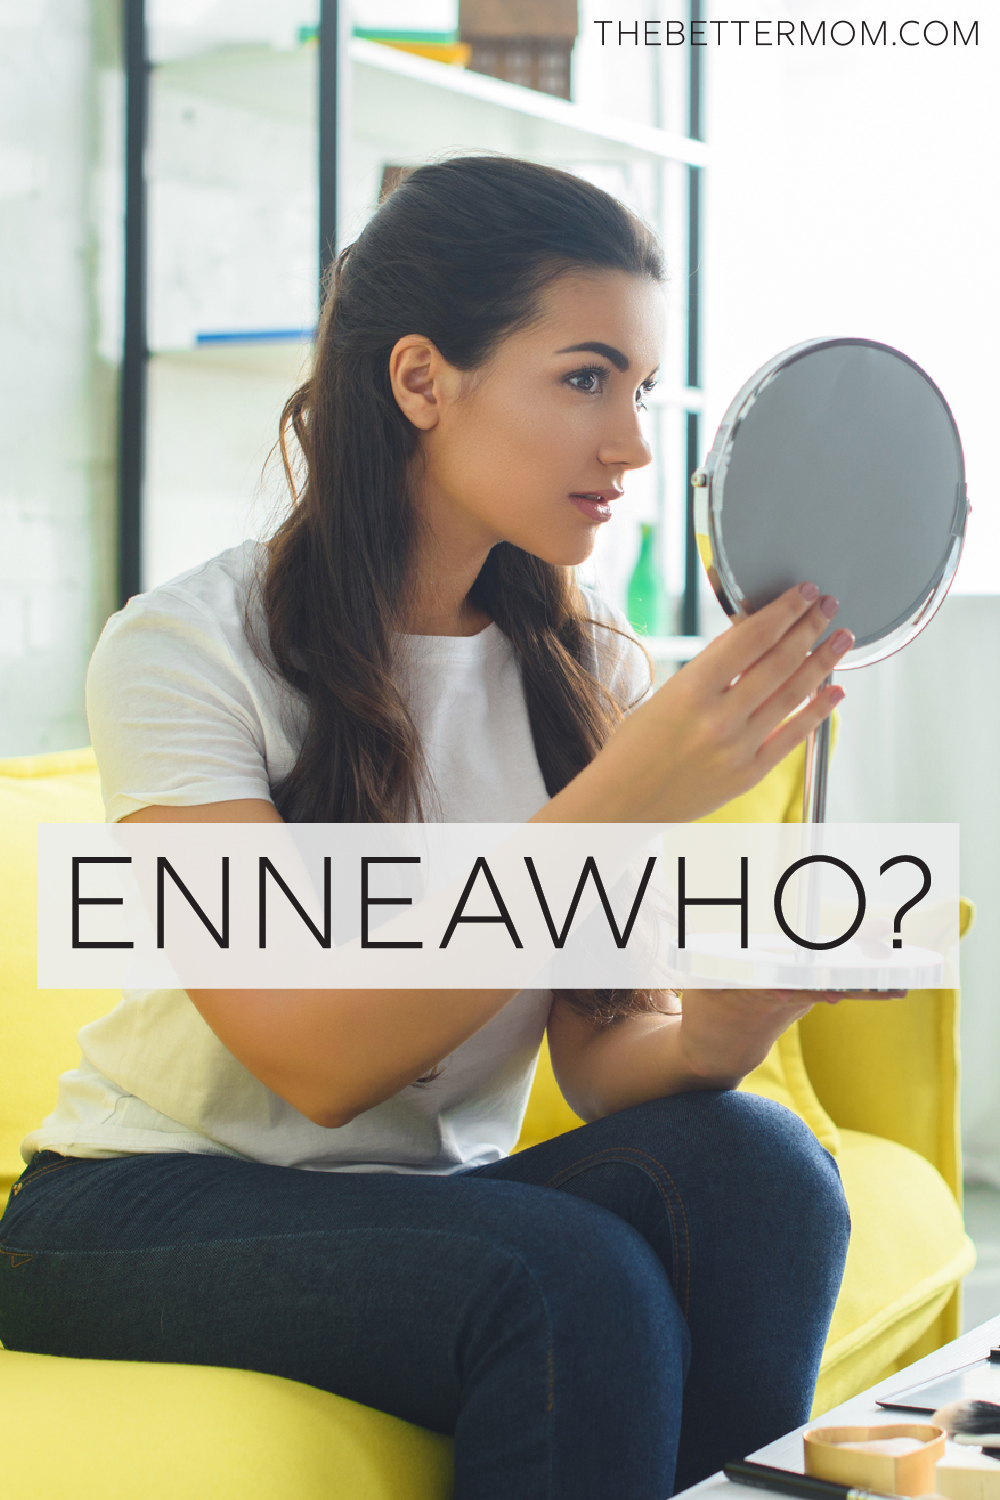 Feel a little lost by all the discussion about the Enneagram? Maybe you wonder if you're really typecast by a personality test? As useful a tool as it may be, today, we want to remind you of who and what really shape your identity!